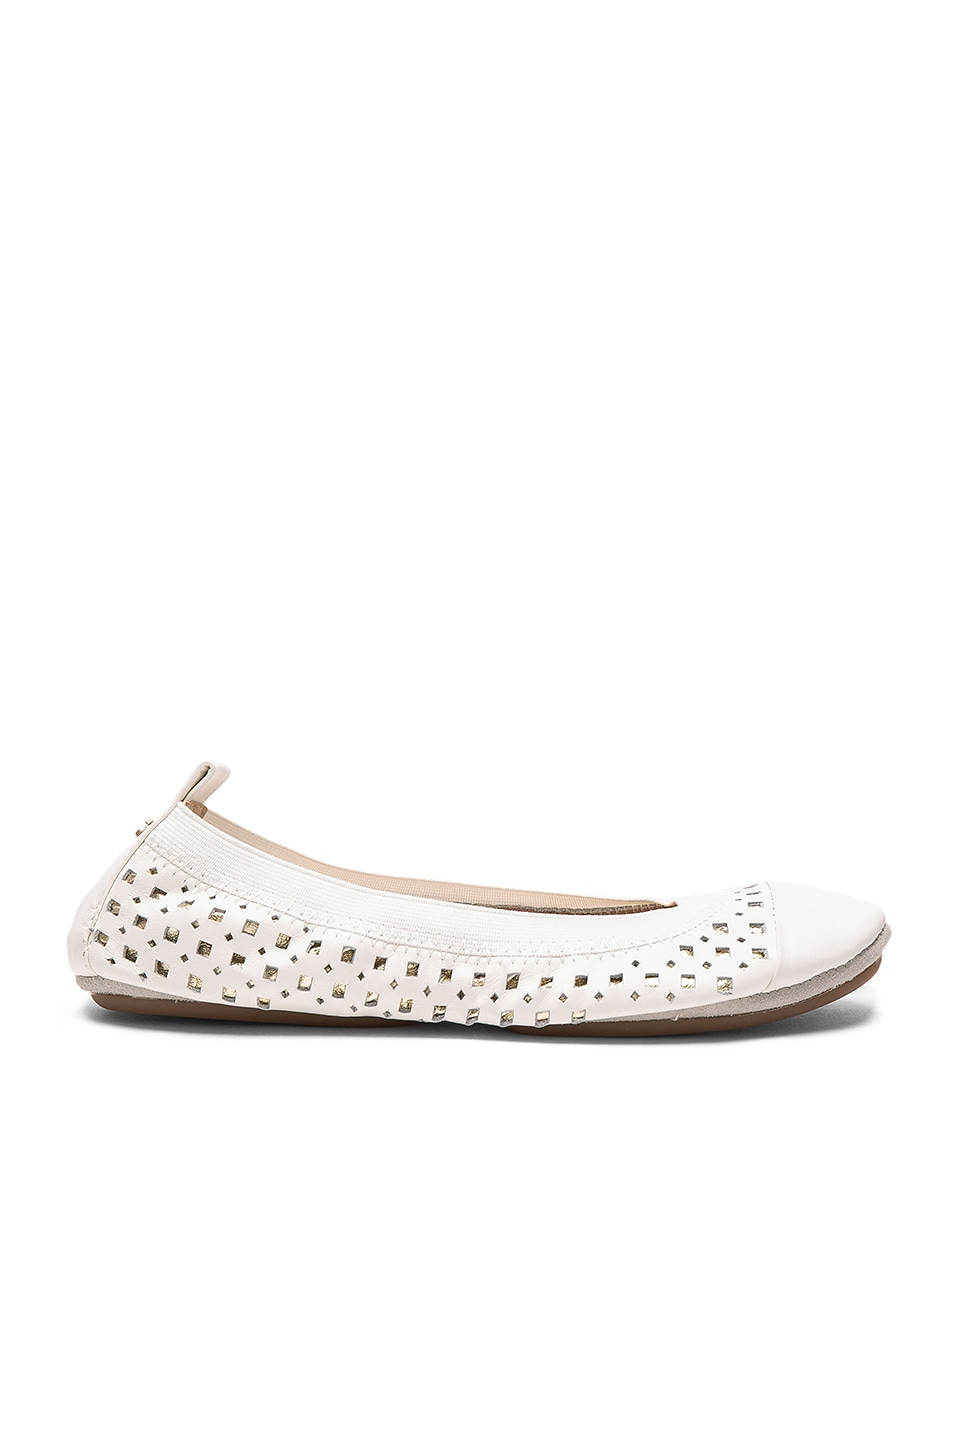 Yosi Samra Samantha Flat in White & Pure Gold